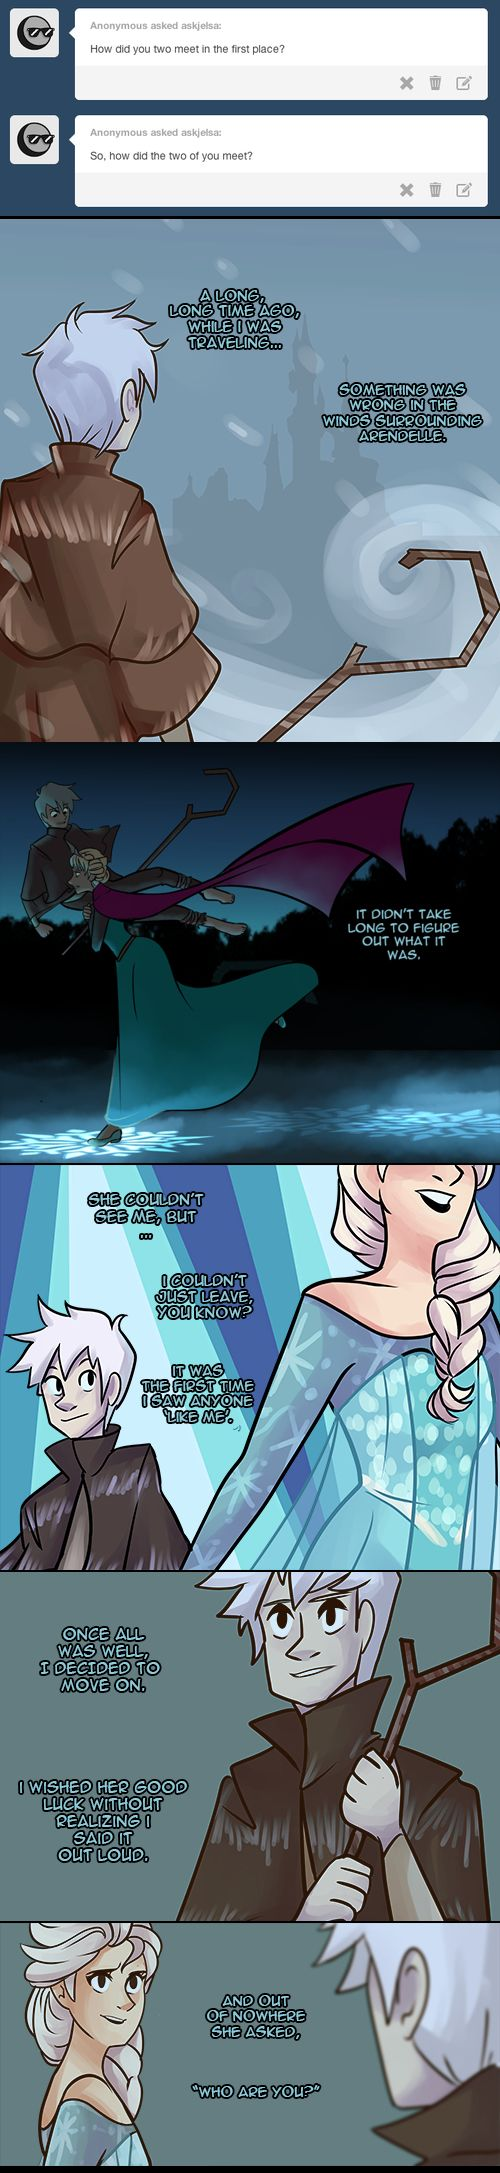 Jelsa: How Did You Meet? Beautiful, although I like to think they met when Elsa was a child ;)